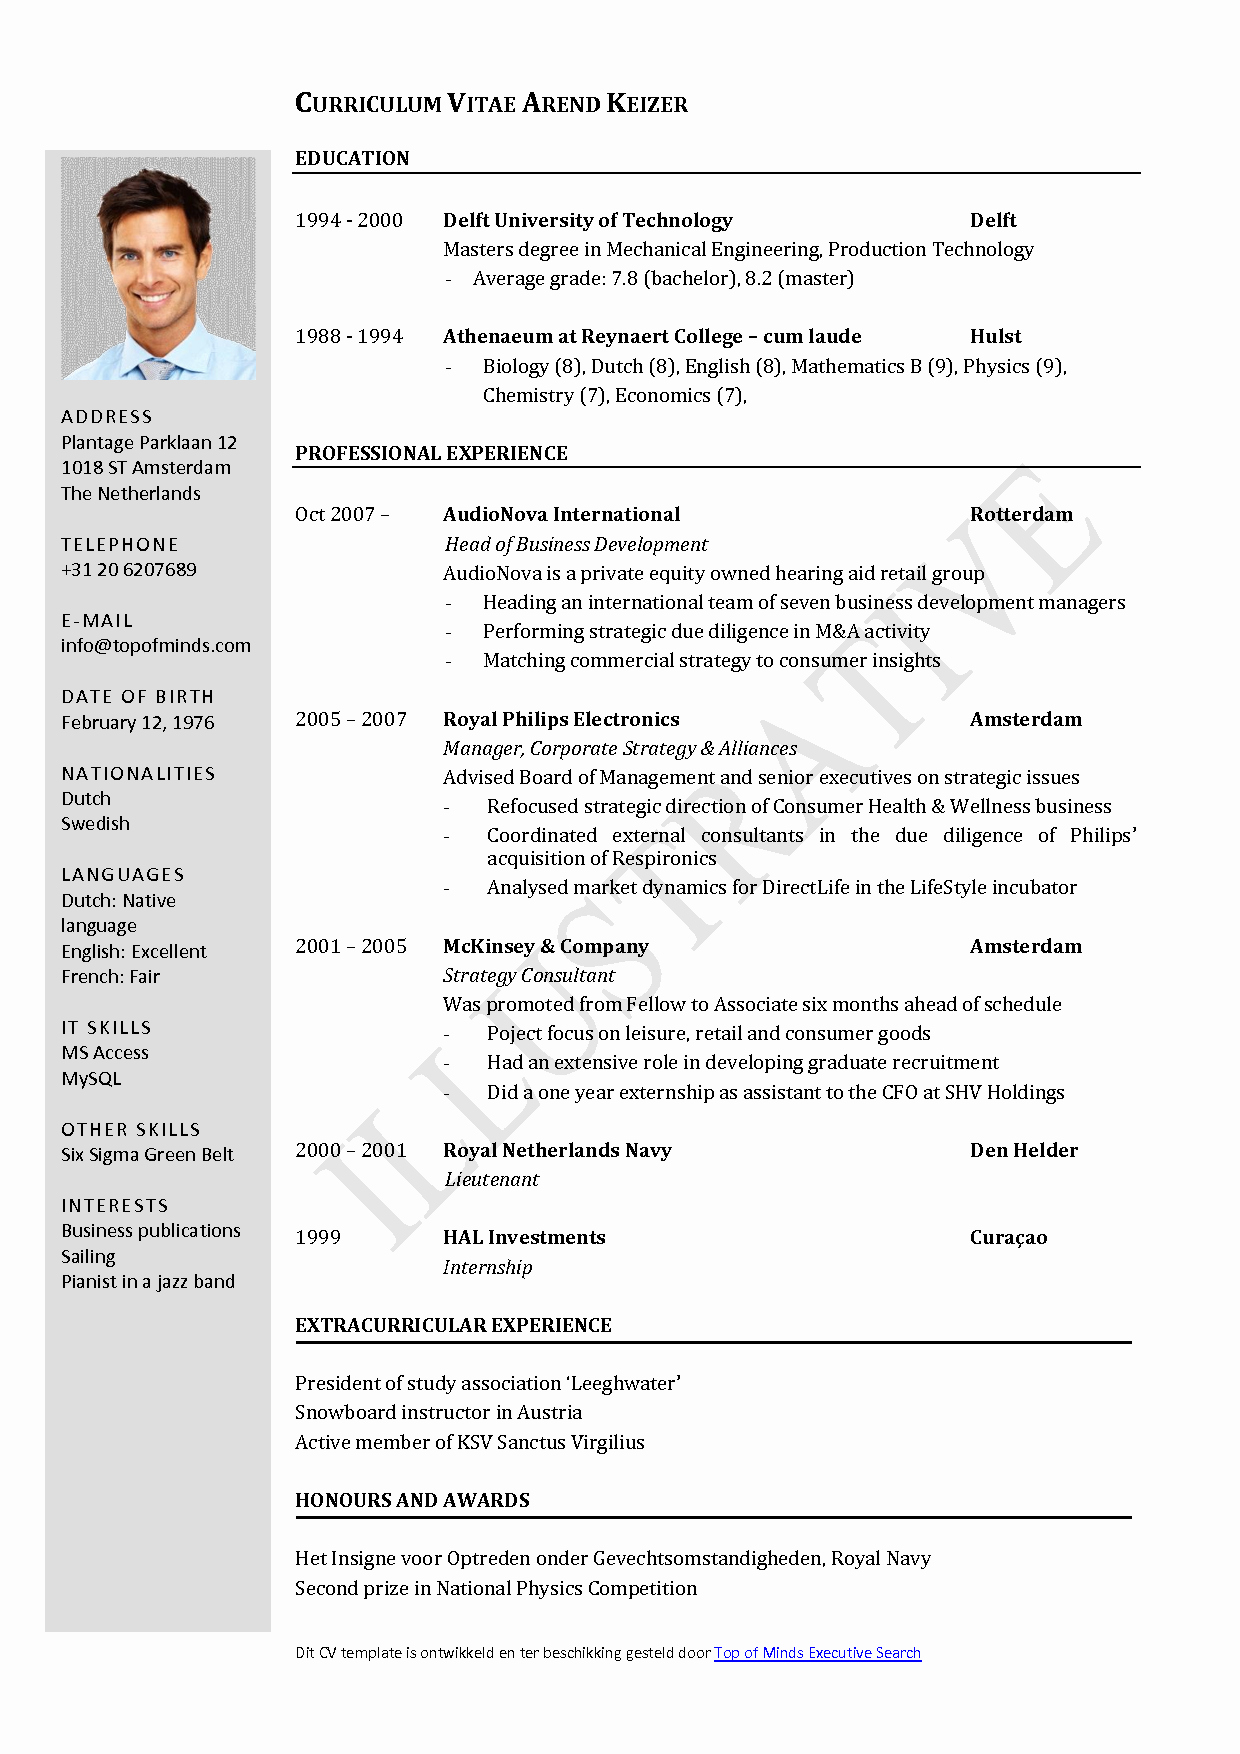 Resume Templates for Word Free Elegant Free Curriculum Vitae Template Word